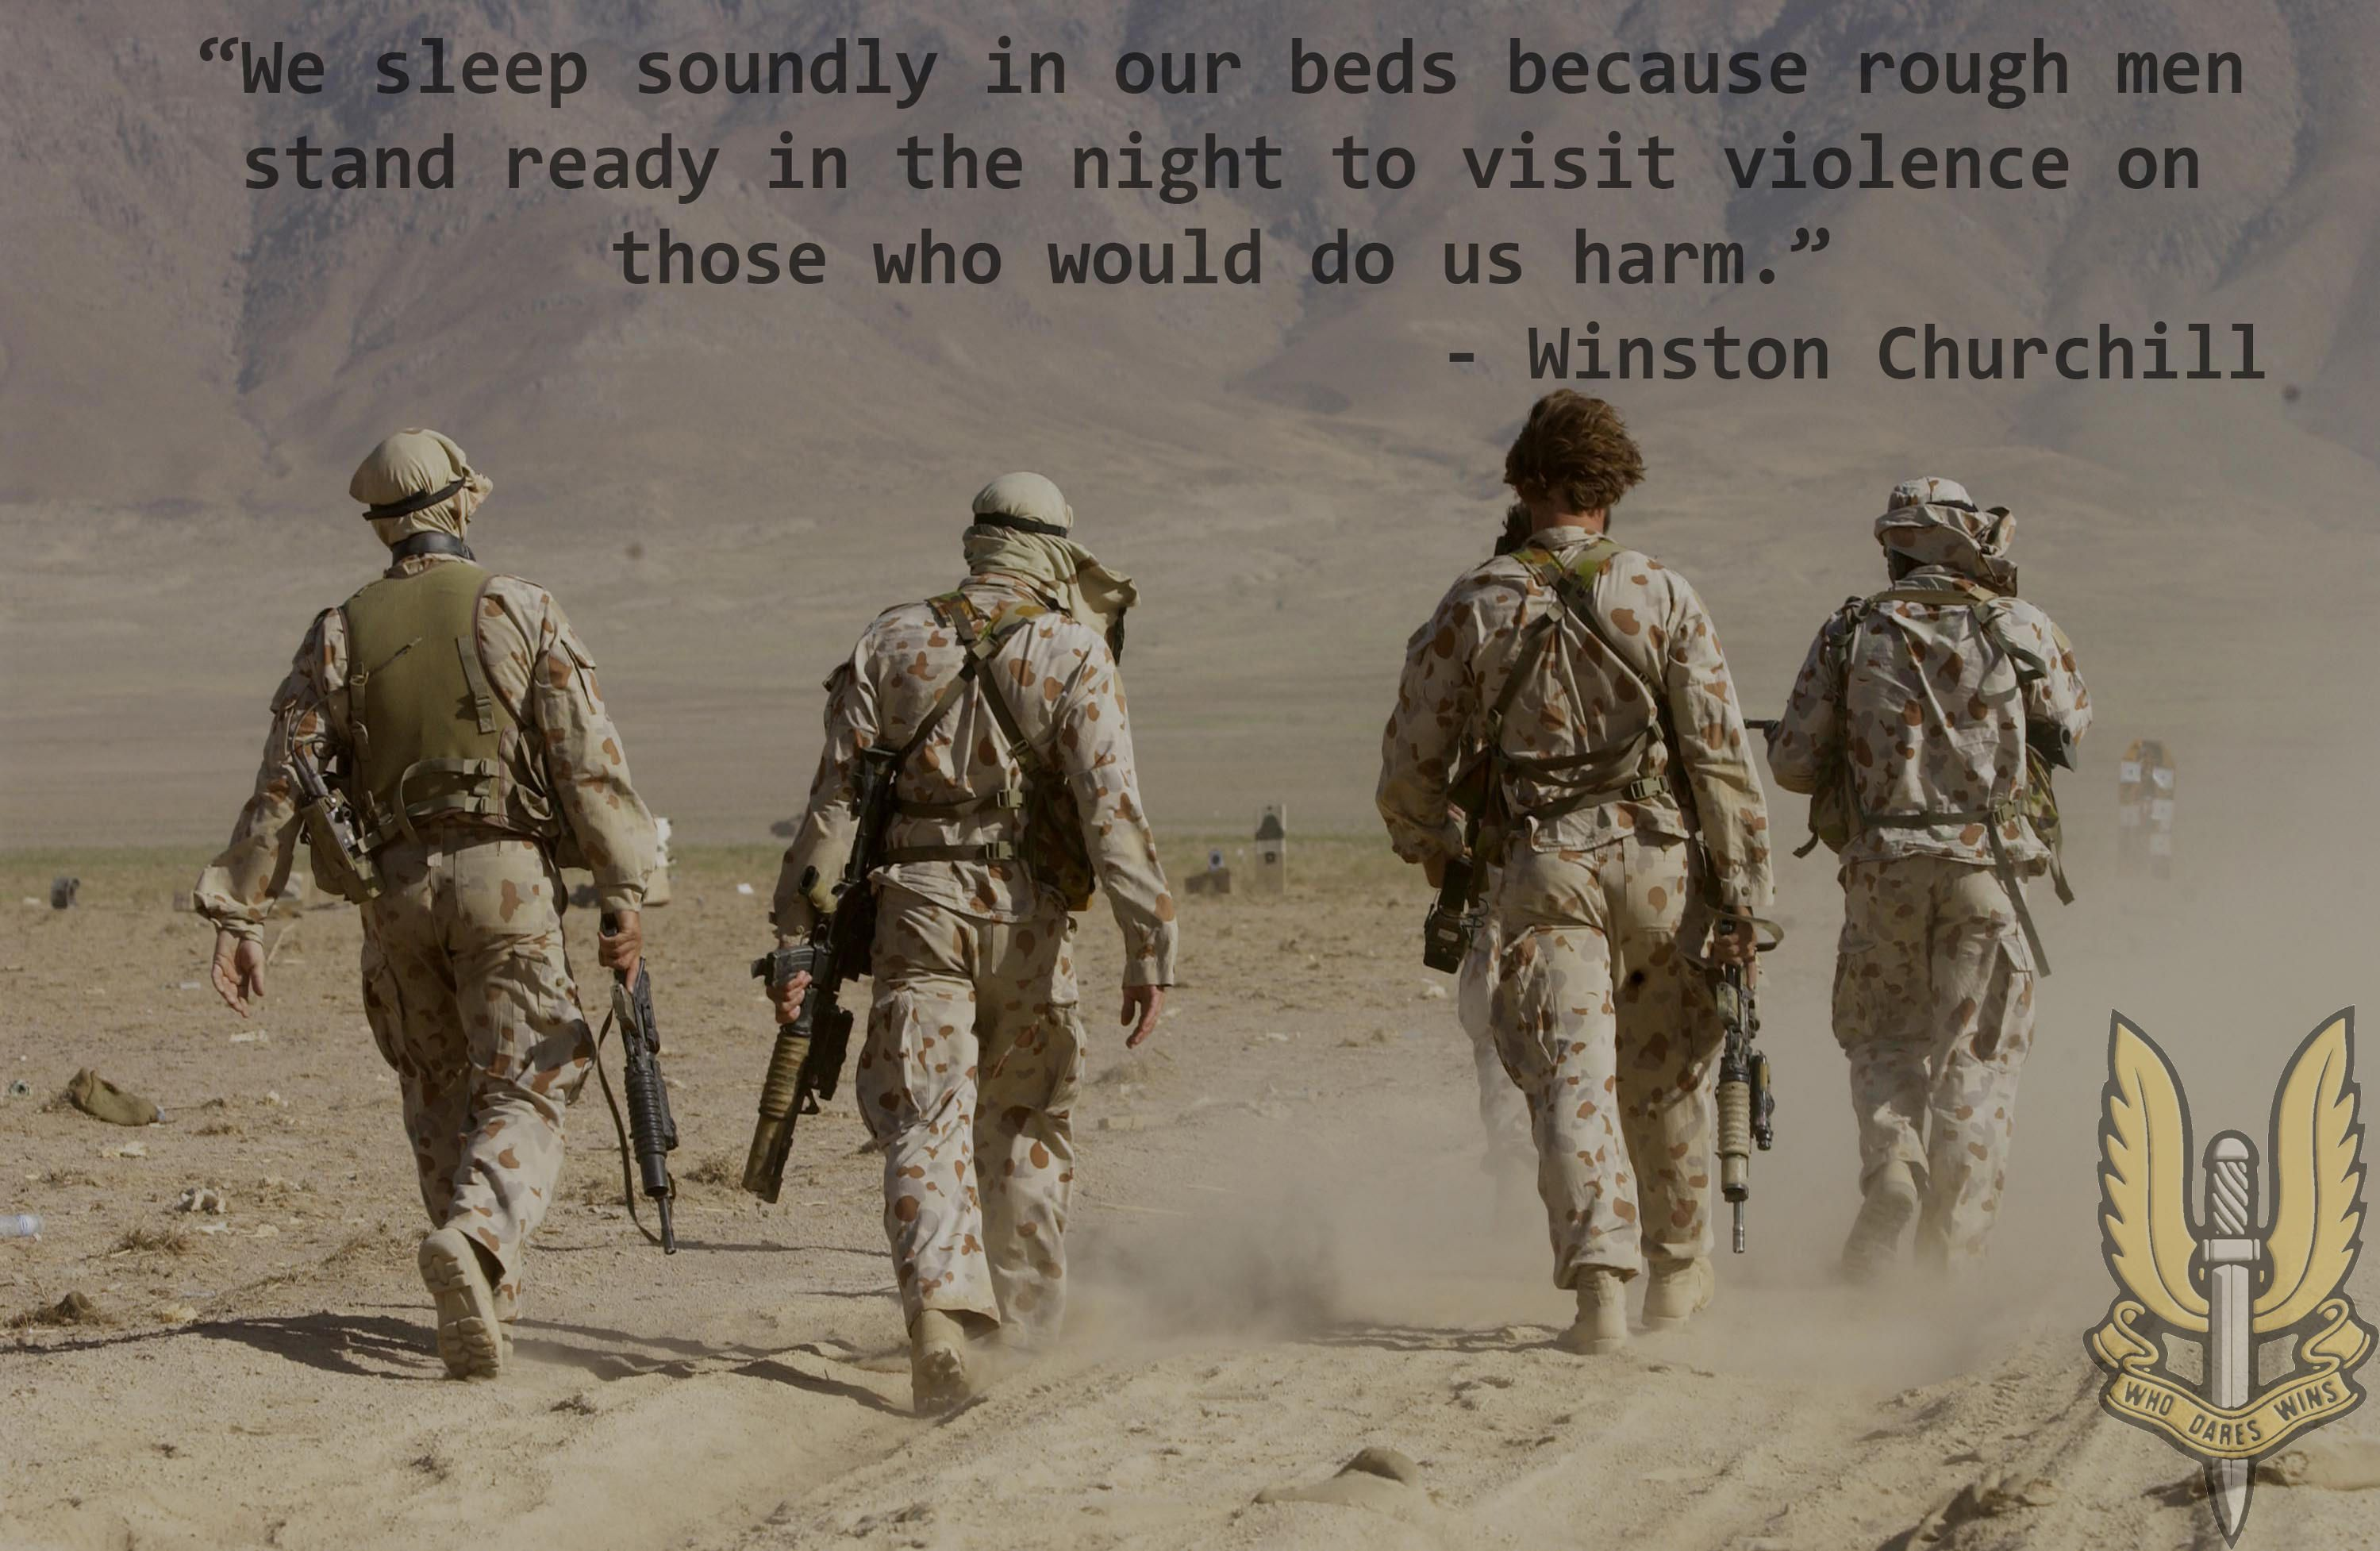 Image Result For Us Military Badass  U S Military. Culinary Schools In Hampton Roads. Online School For Physical Therapy. Turning Point Counseling San Diego Solar Panel. Web Application Firewall Gartner. Underwater Dance Photography. What Is Medical Coding And Billing. Denver Dodge Dealerships Msn Online Messenger. Plastic Gutters Vs Aluminum Chimney Sweep Dc